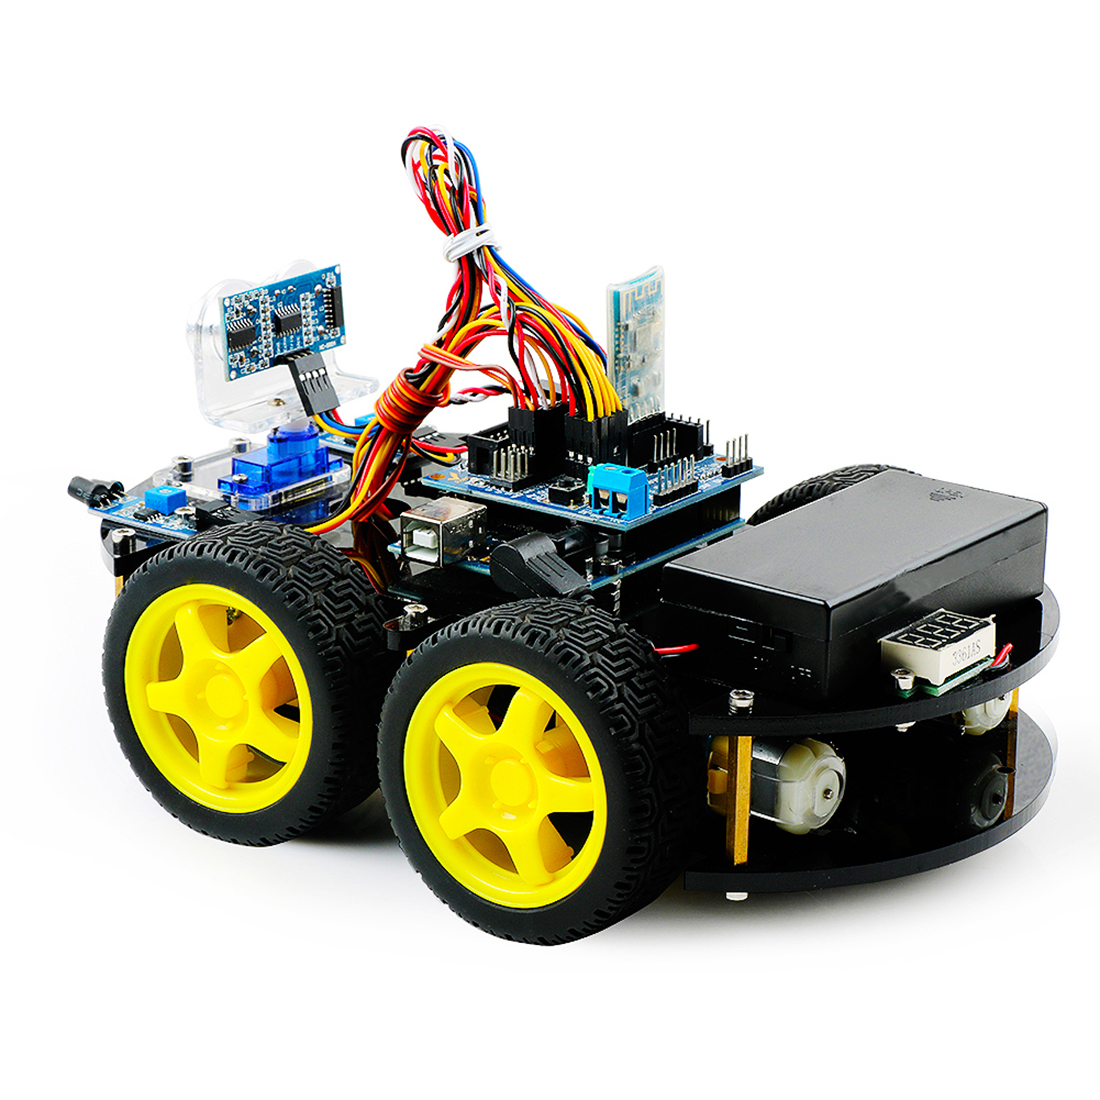 DIY Obstacle Avoidance Smart Programmable Robot Car Educational Learn Kit For BLE UNO /Arduino UNO Christmas Gift High Tech Toy